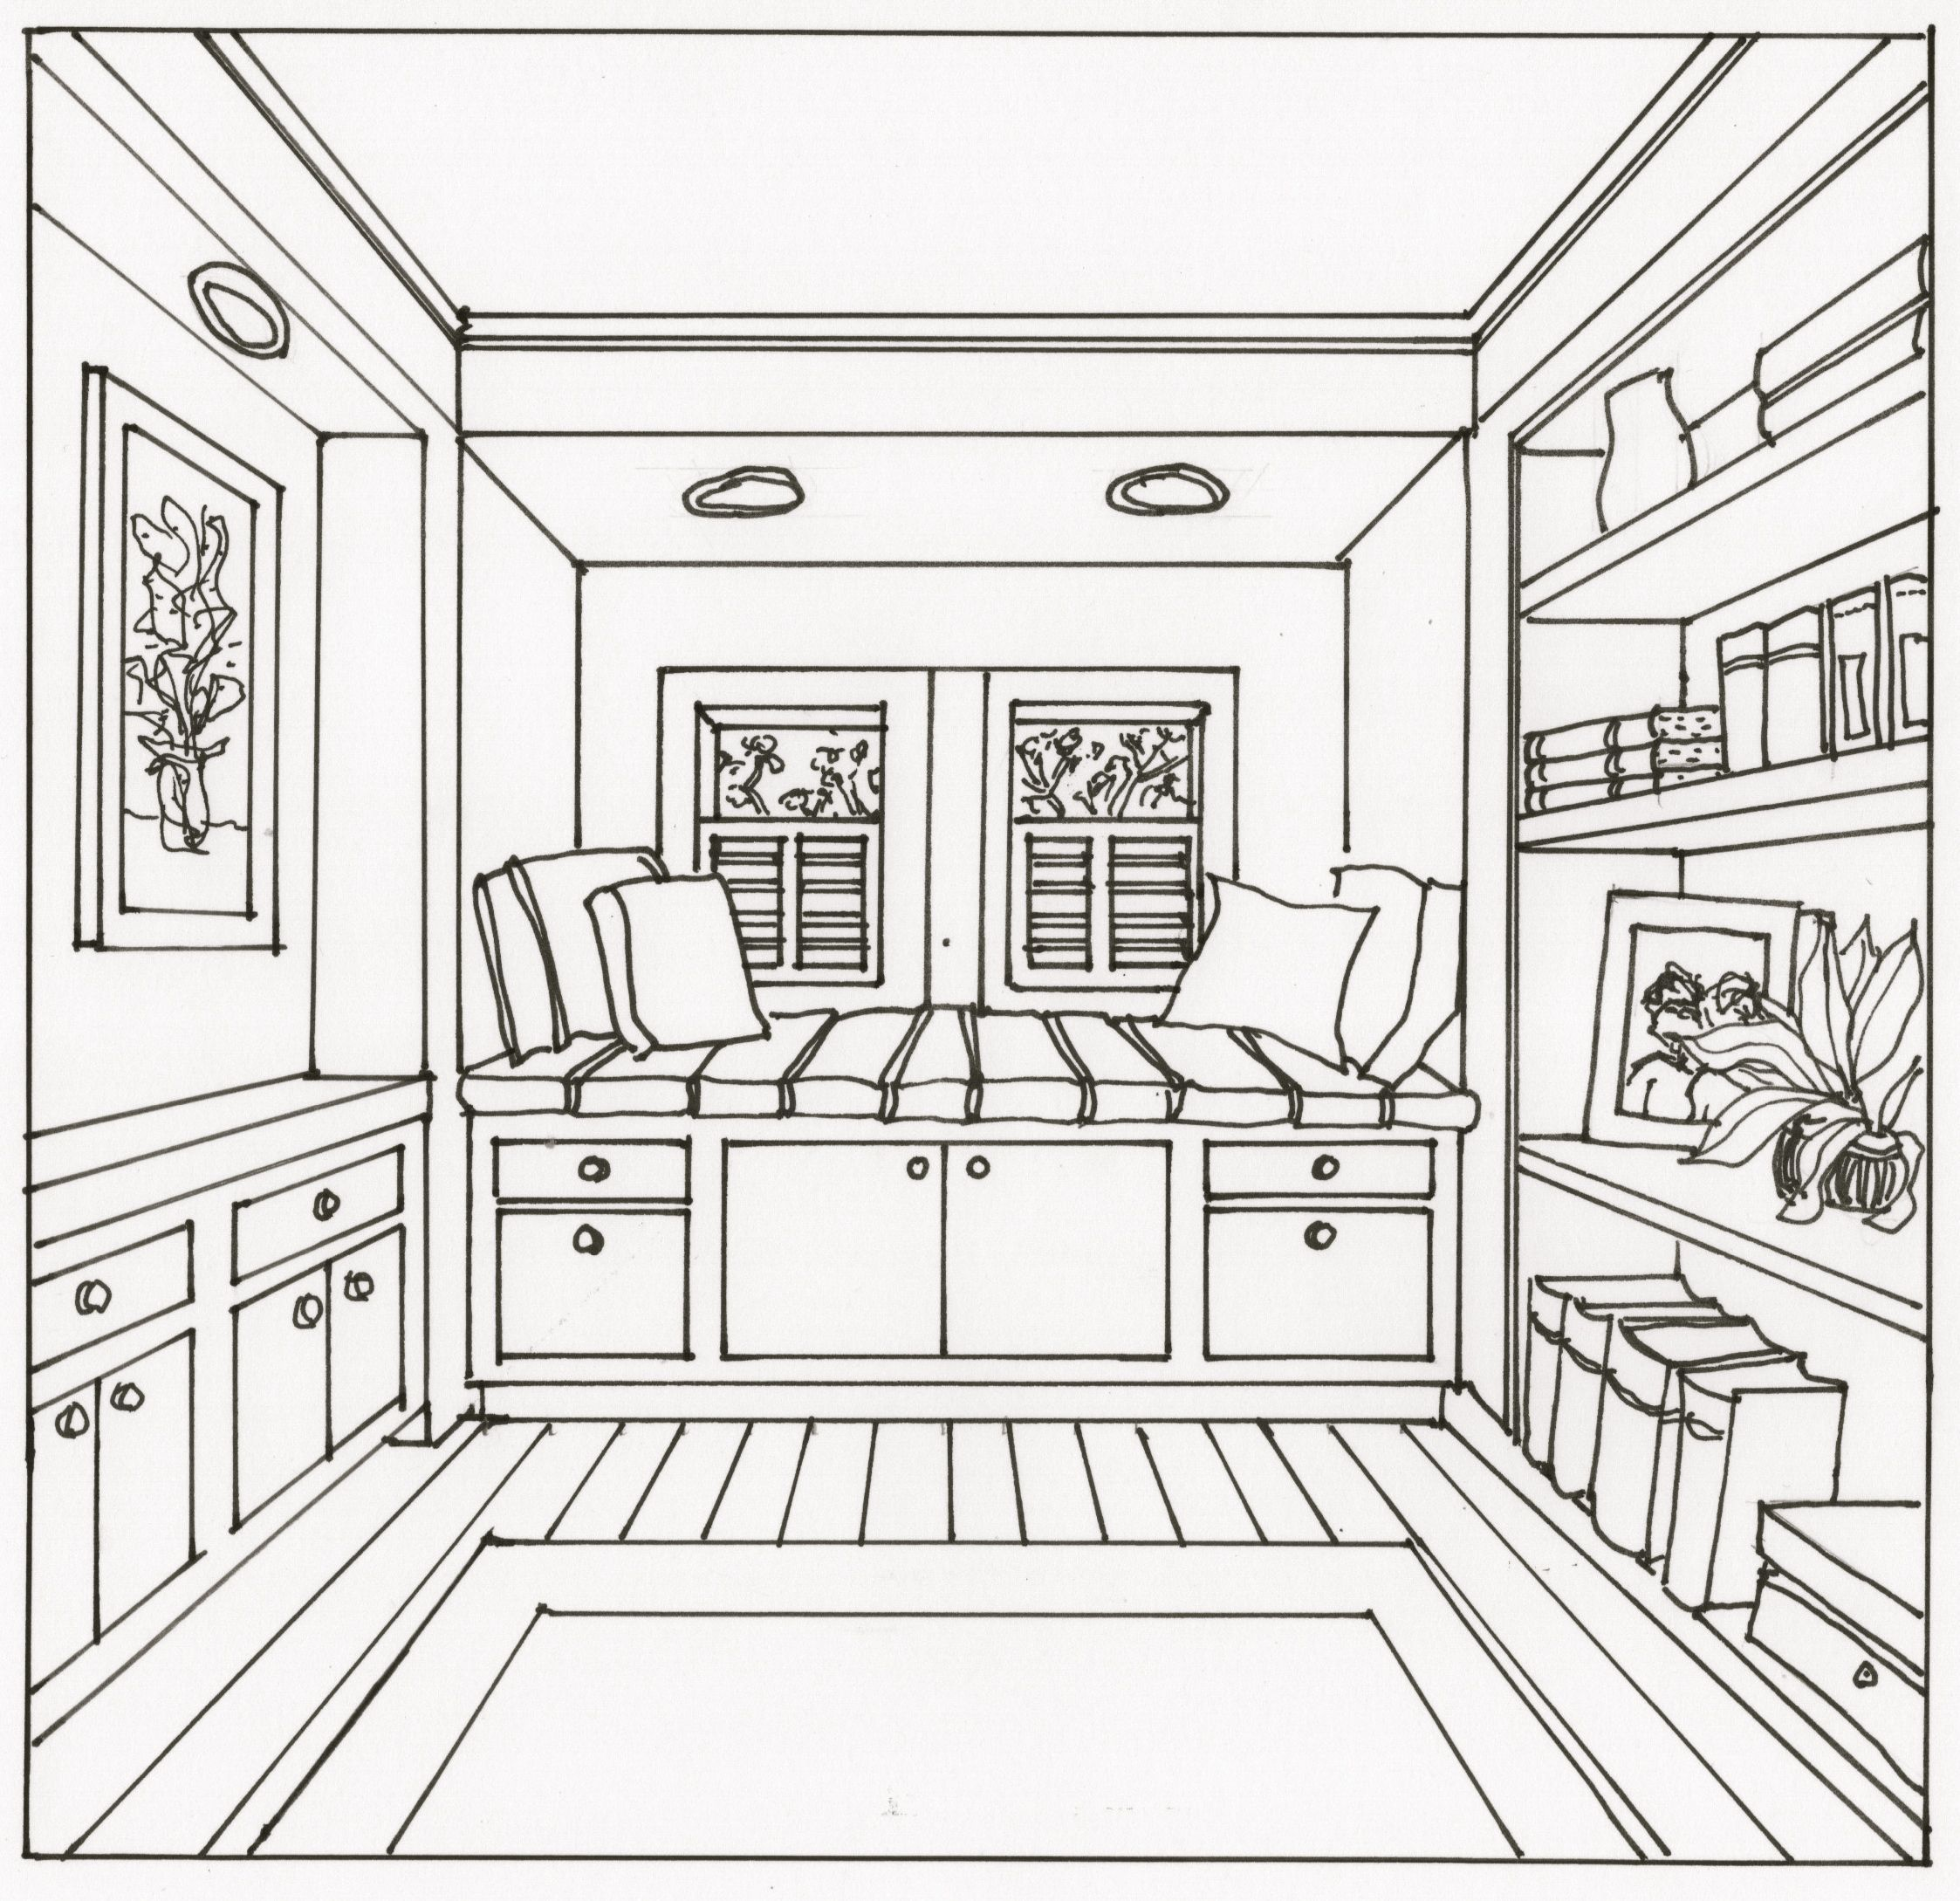 This One Point Perspective Window Seat Image Was One Of The Drawing Activities Description From